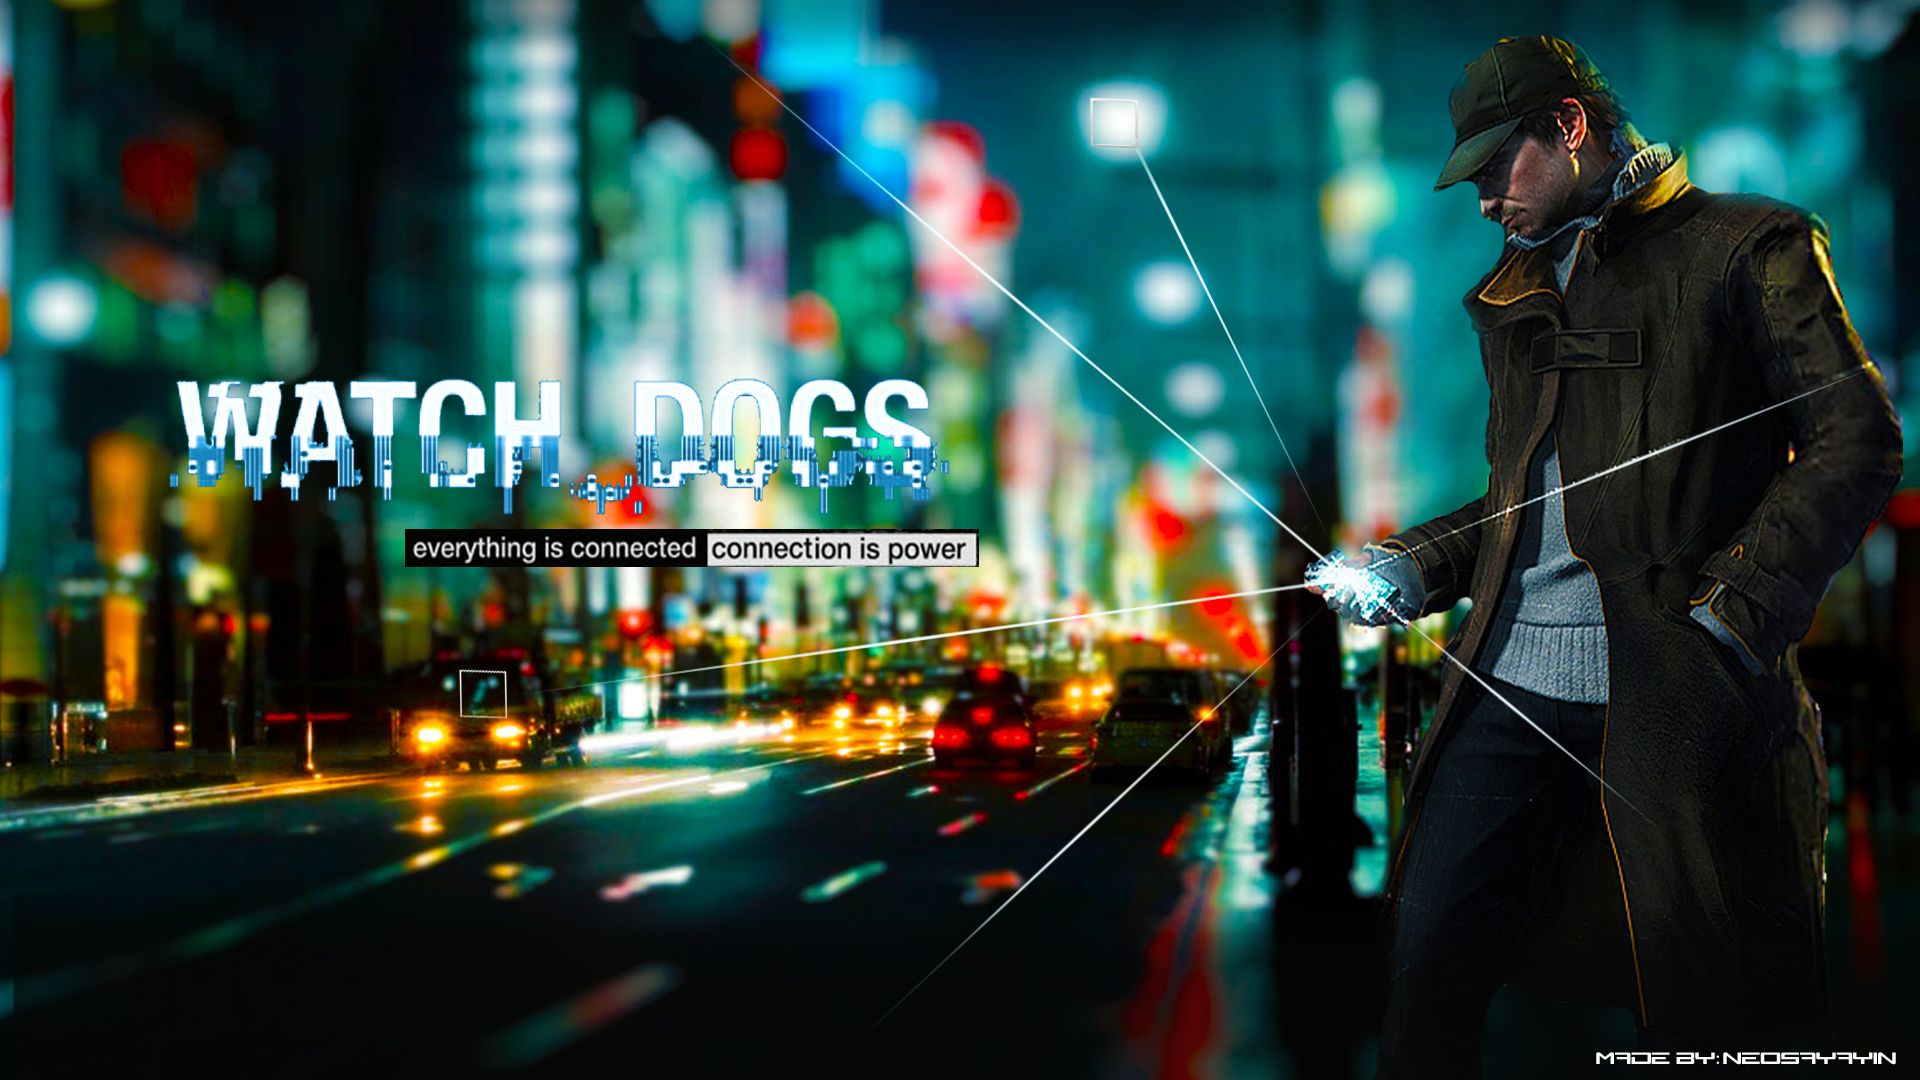 1Watch Dogs Pc Game Download